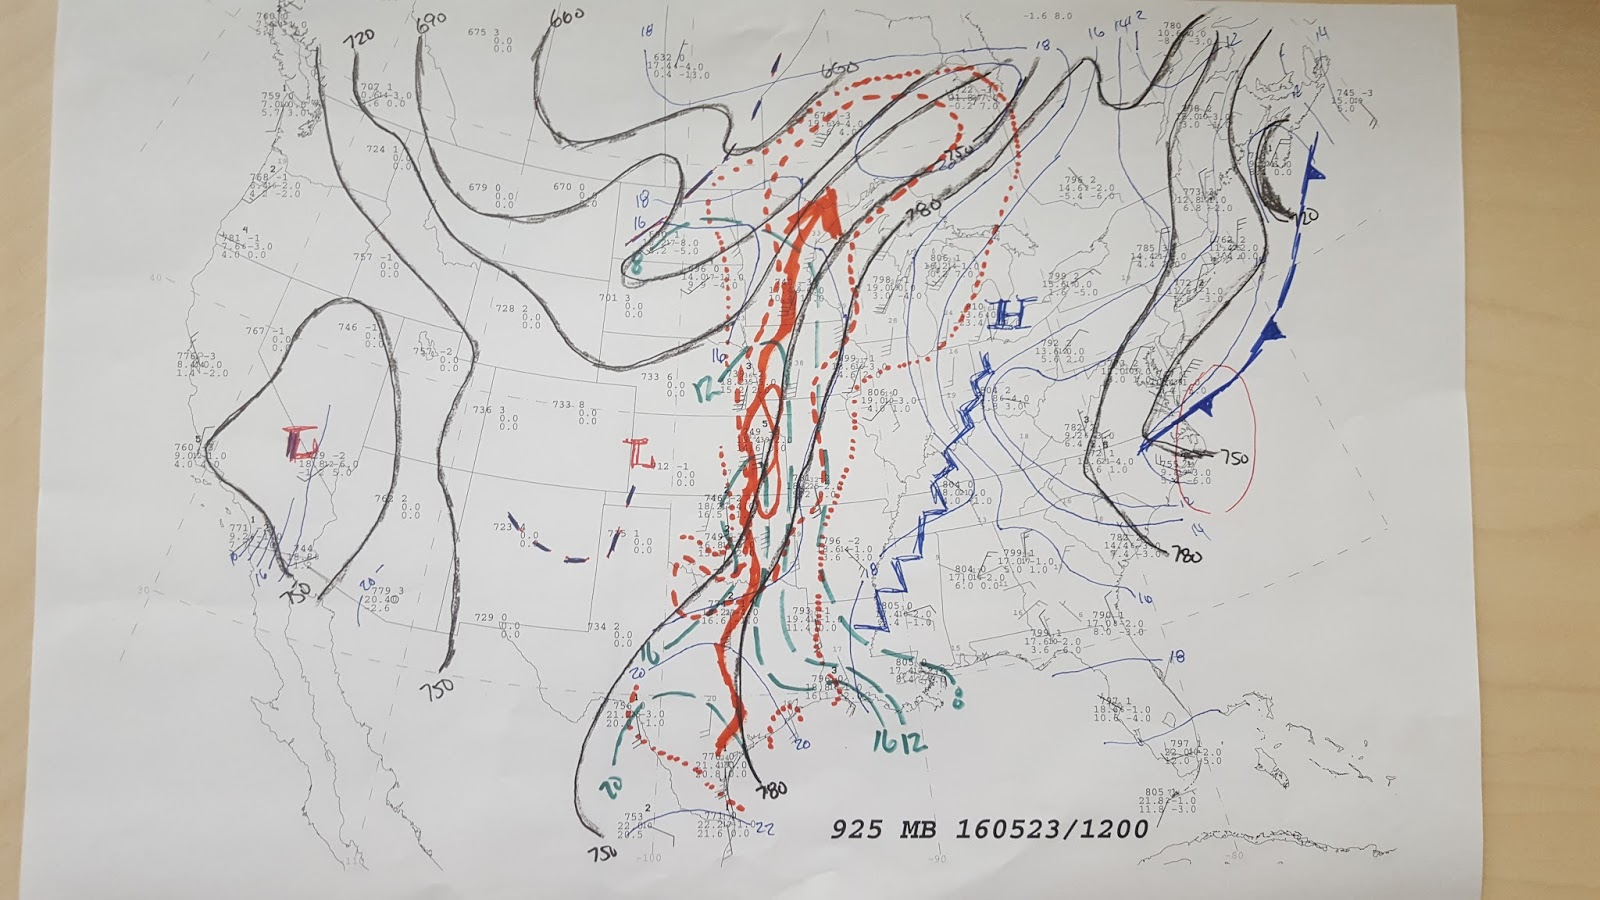 these detailed maps showed good flow ahead of the mcs on the order of 40kts along with a ribbon of high dewpoints overall the maps showed warm